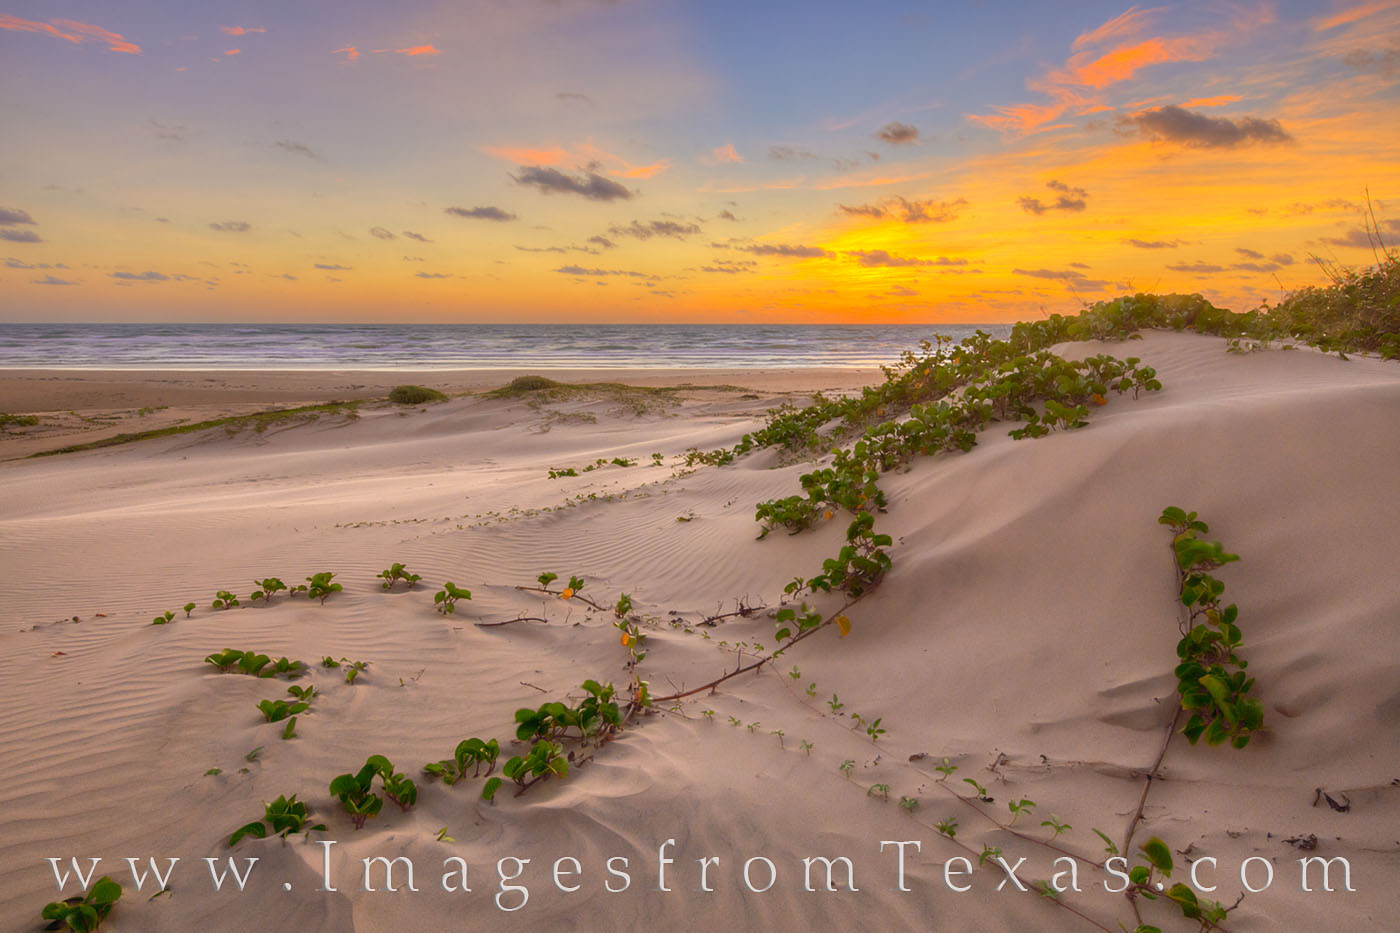 south padre island, texas coast, sunrise, dunes, sand dunes, ivy, grass, gulf coast, port isabel, sand, morning, photo